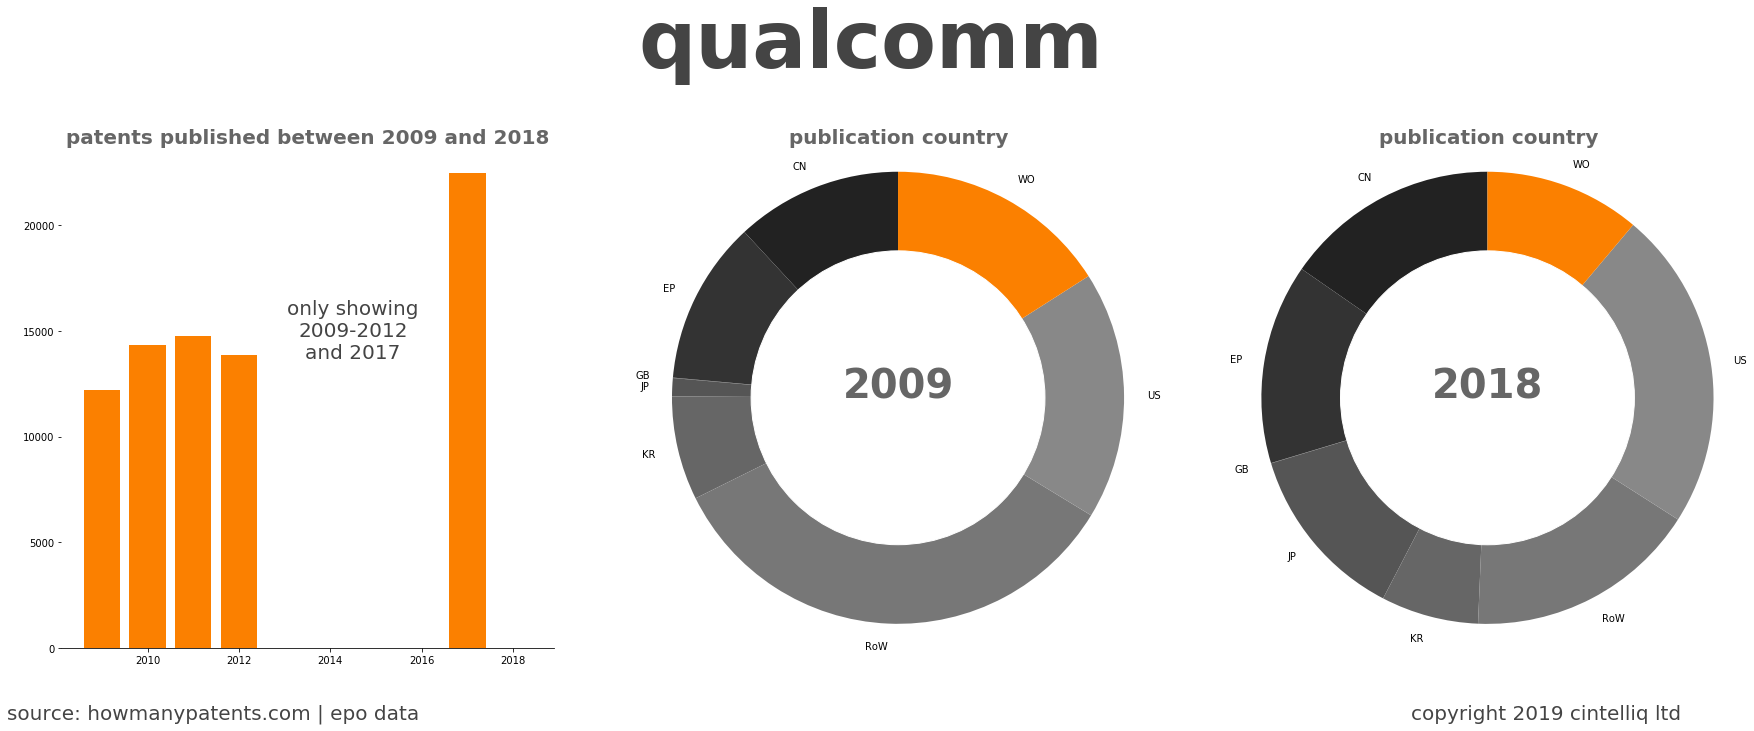 summary of patents for Qualcomm